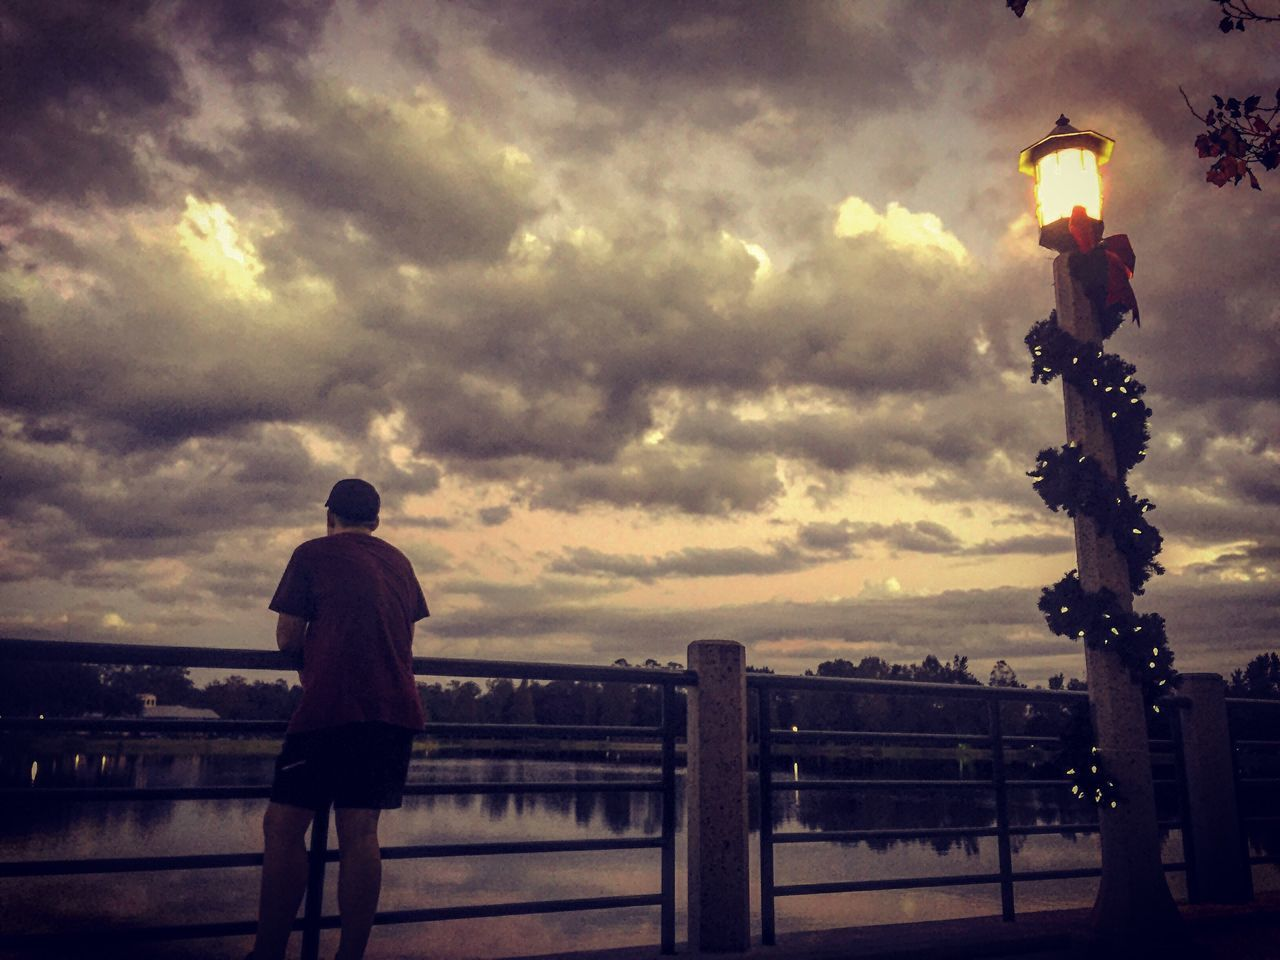 cloud - sky, sky, railing, dramatic sky, sunset, silhouette, rear view, outdoors, walking, men, real people, built structure, standing, full length, illuminated, architecture, storm cloud, day, nature, city, one person, people